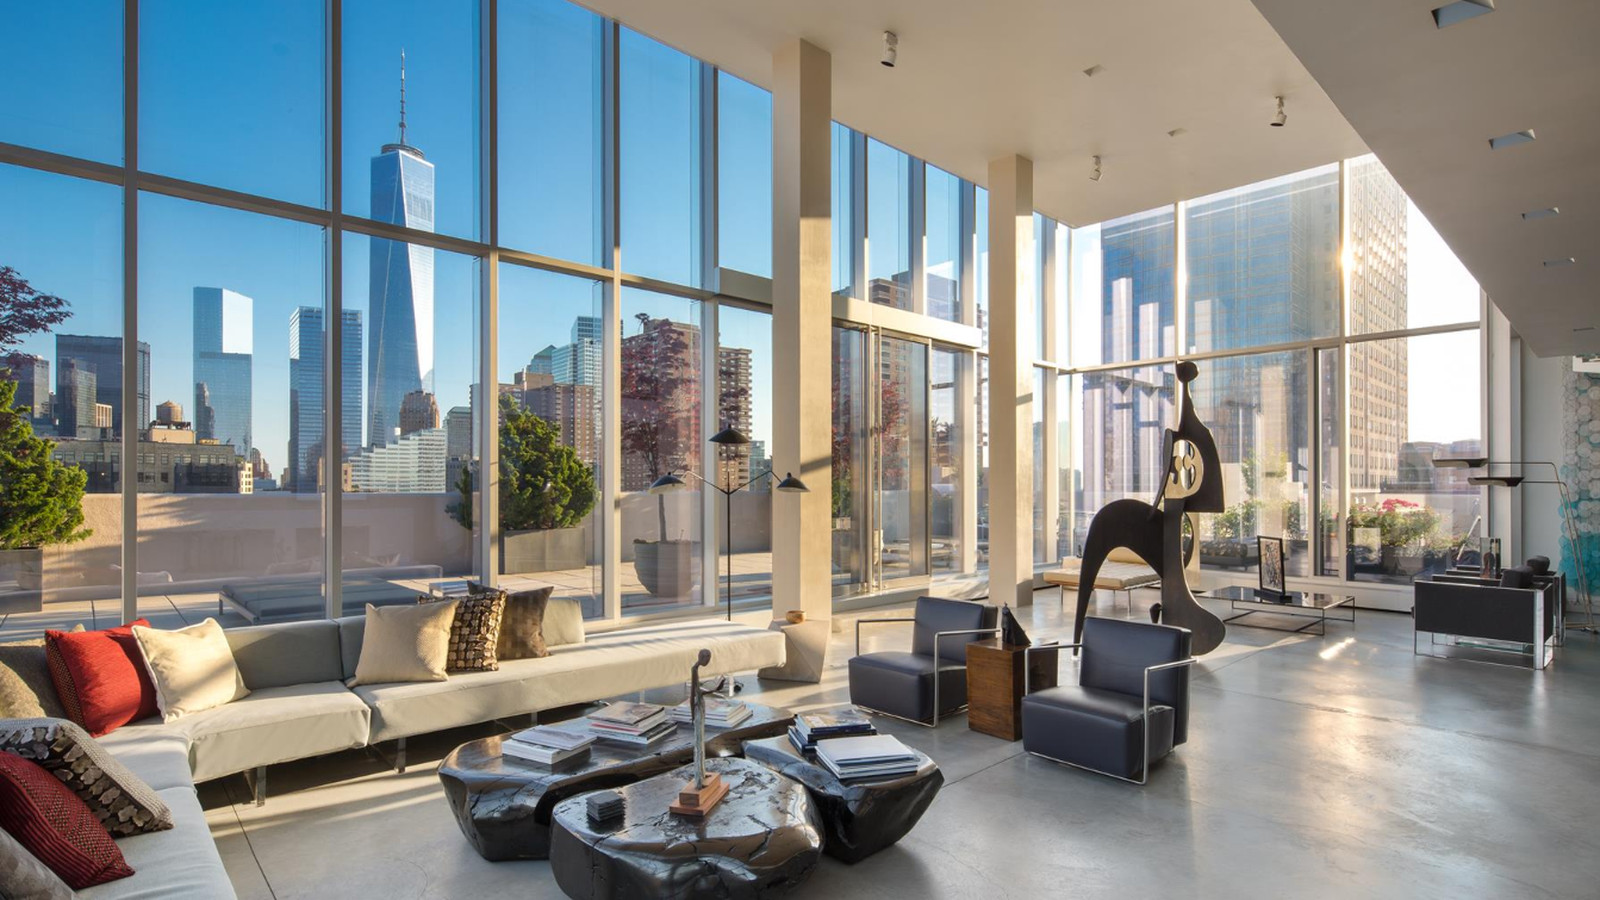 Tribeca s sky lofts penthouse returns now wants 45m for Tribeca homes for sale